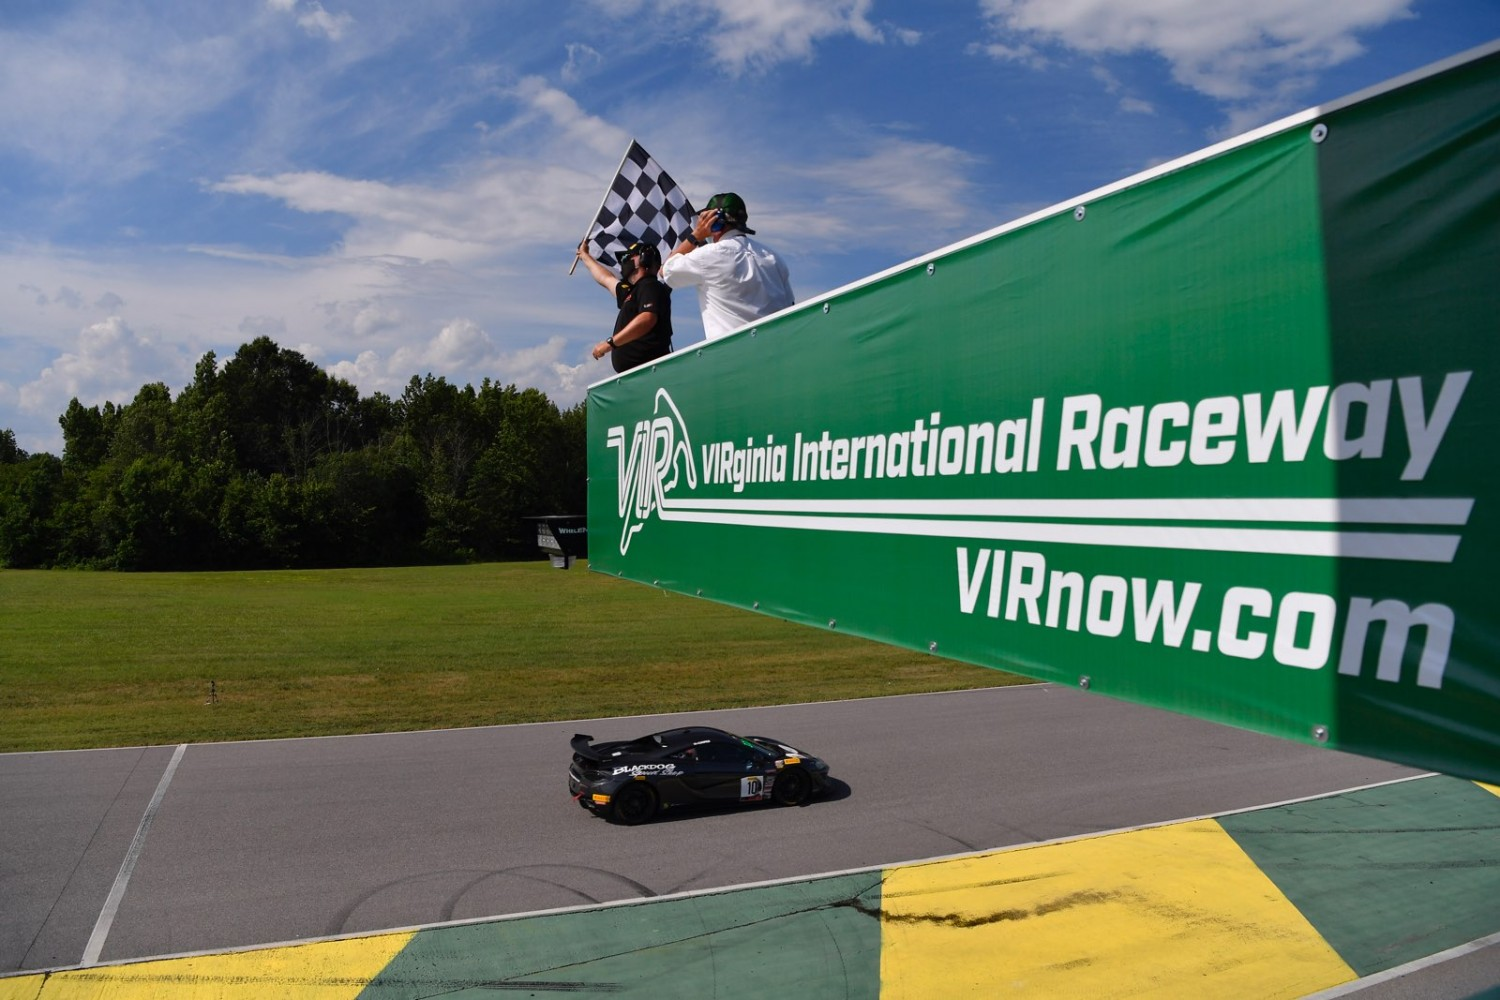 Cooper Wins Again at VIR; Dinan Joins the Sweeps with Am Wins in Tow